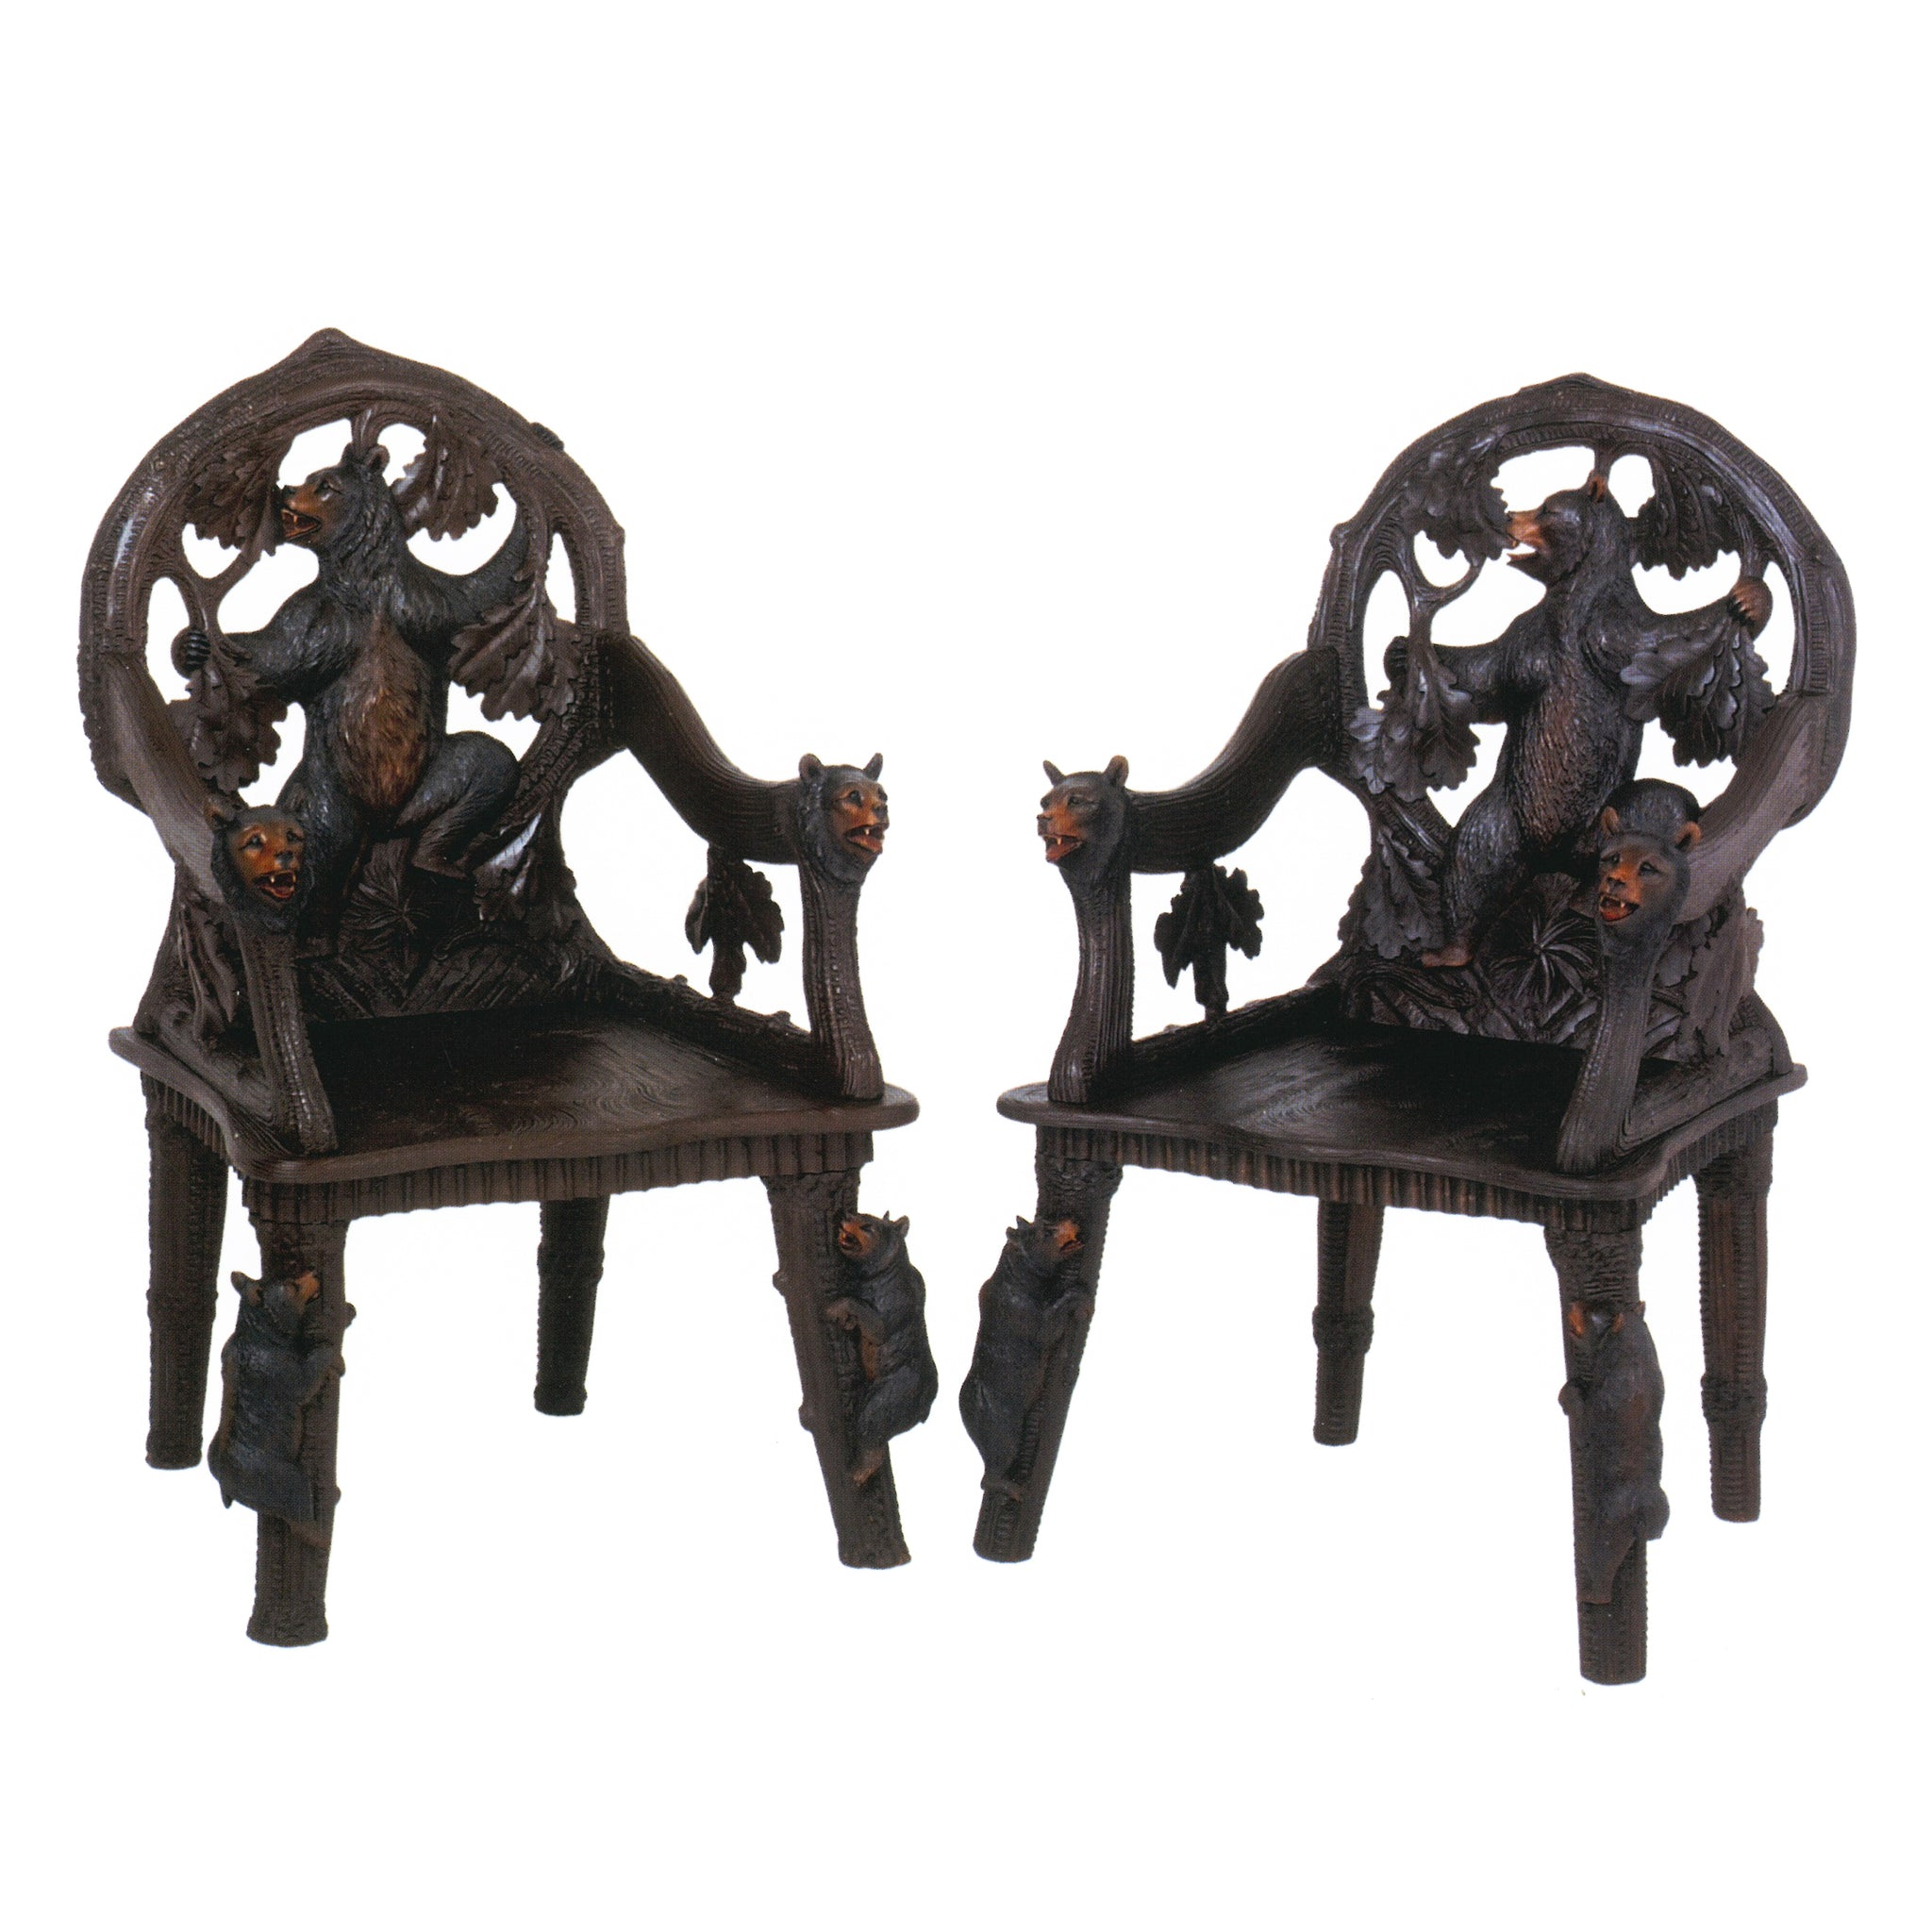 Two Bears Chairs swiss carvings